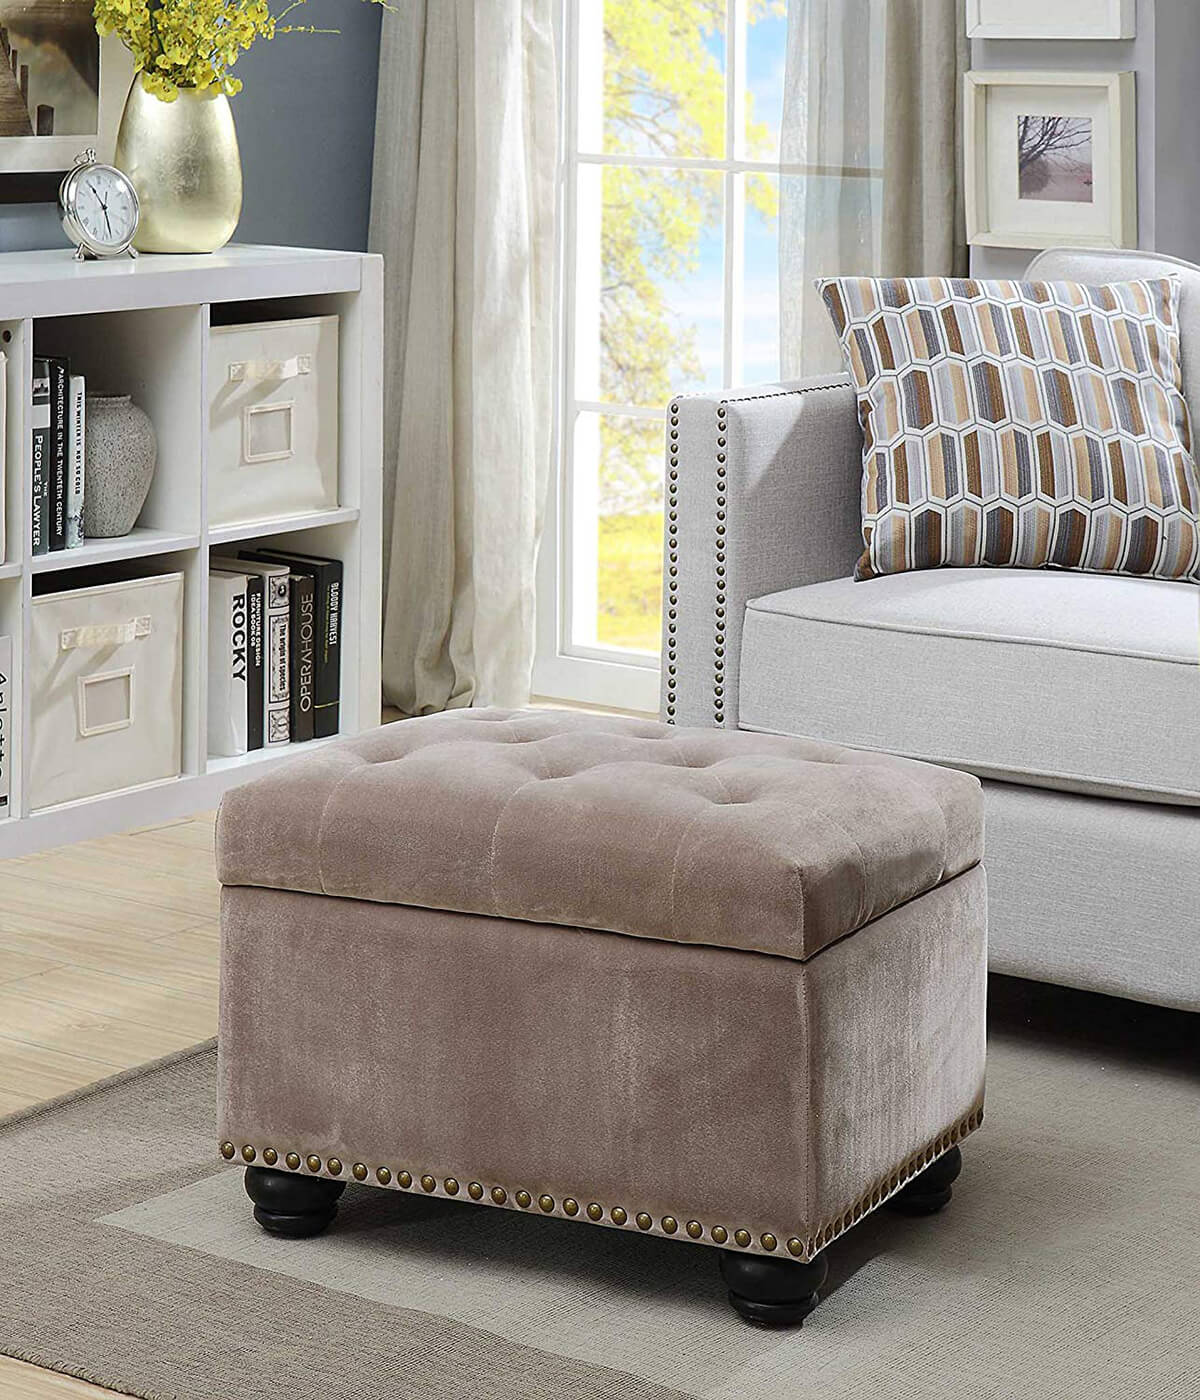 Convenience Concepts Storage Ottoman in Velvet Taupe